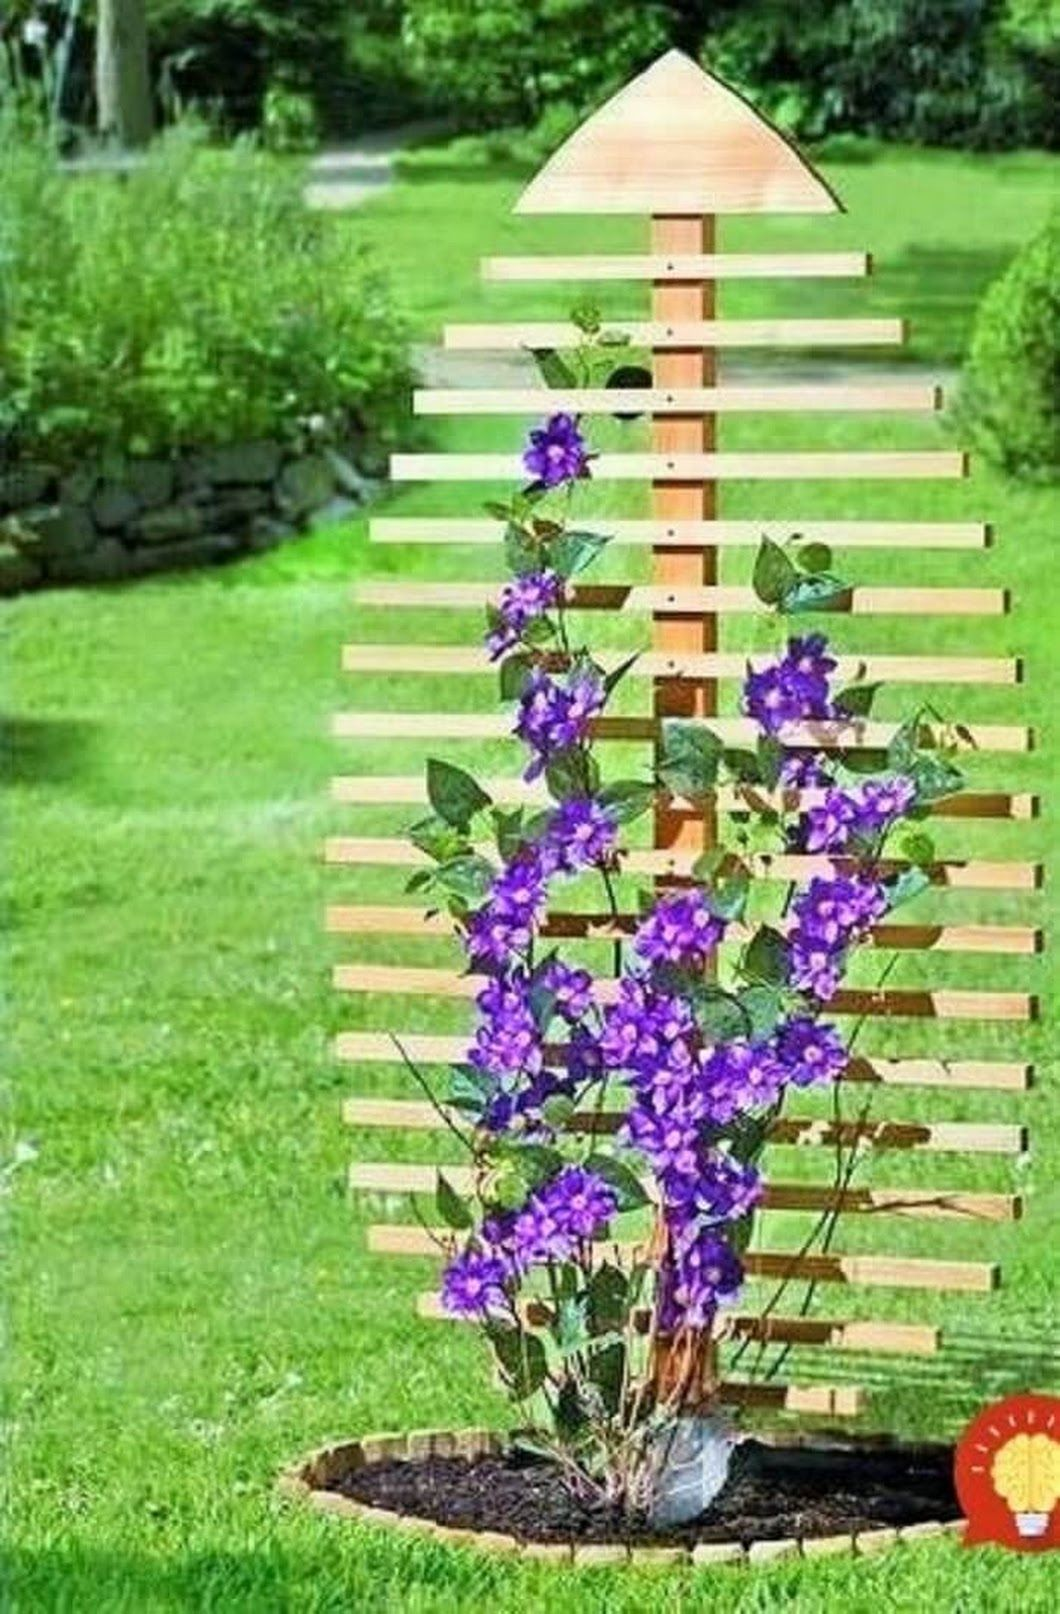 15-Fascinating Decoration Ideas For Your Home Garden   DIY: Yard n ...